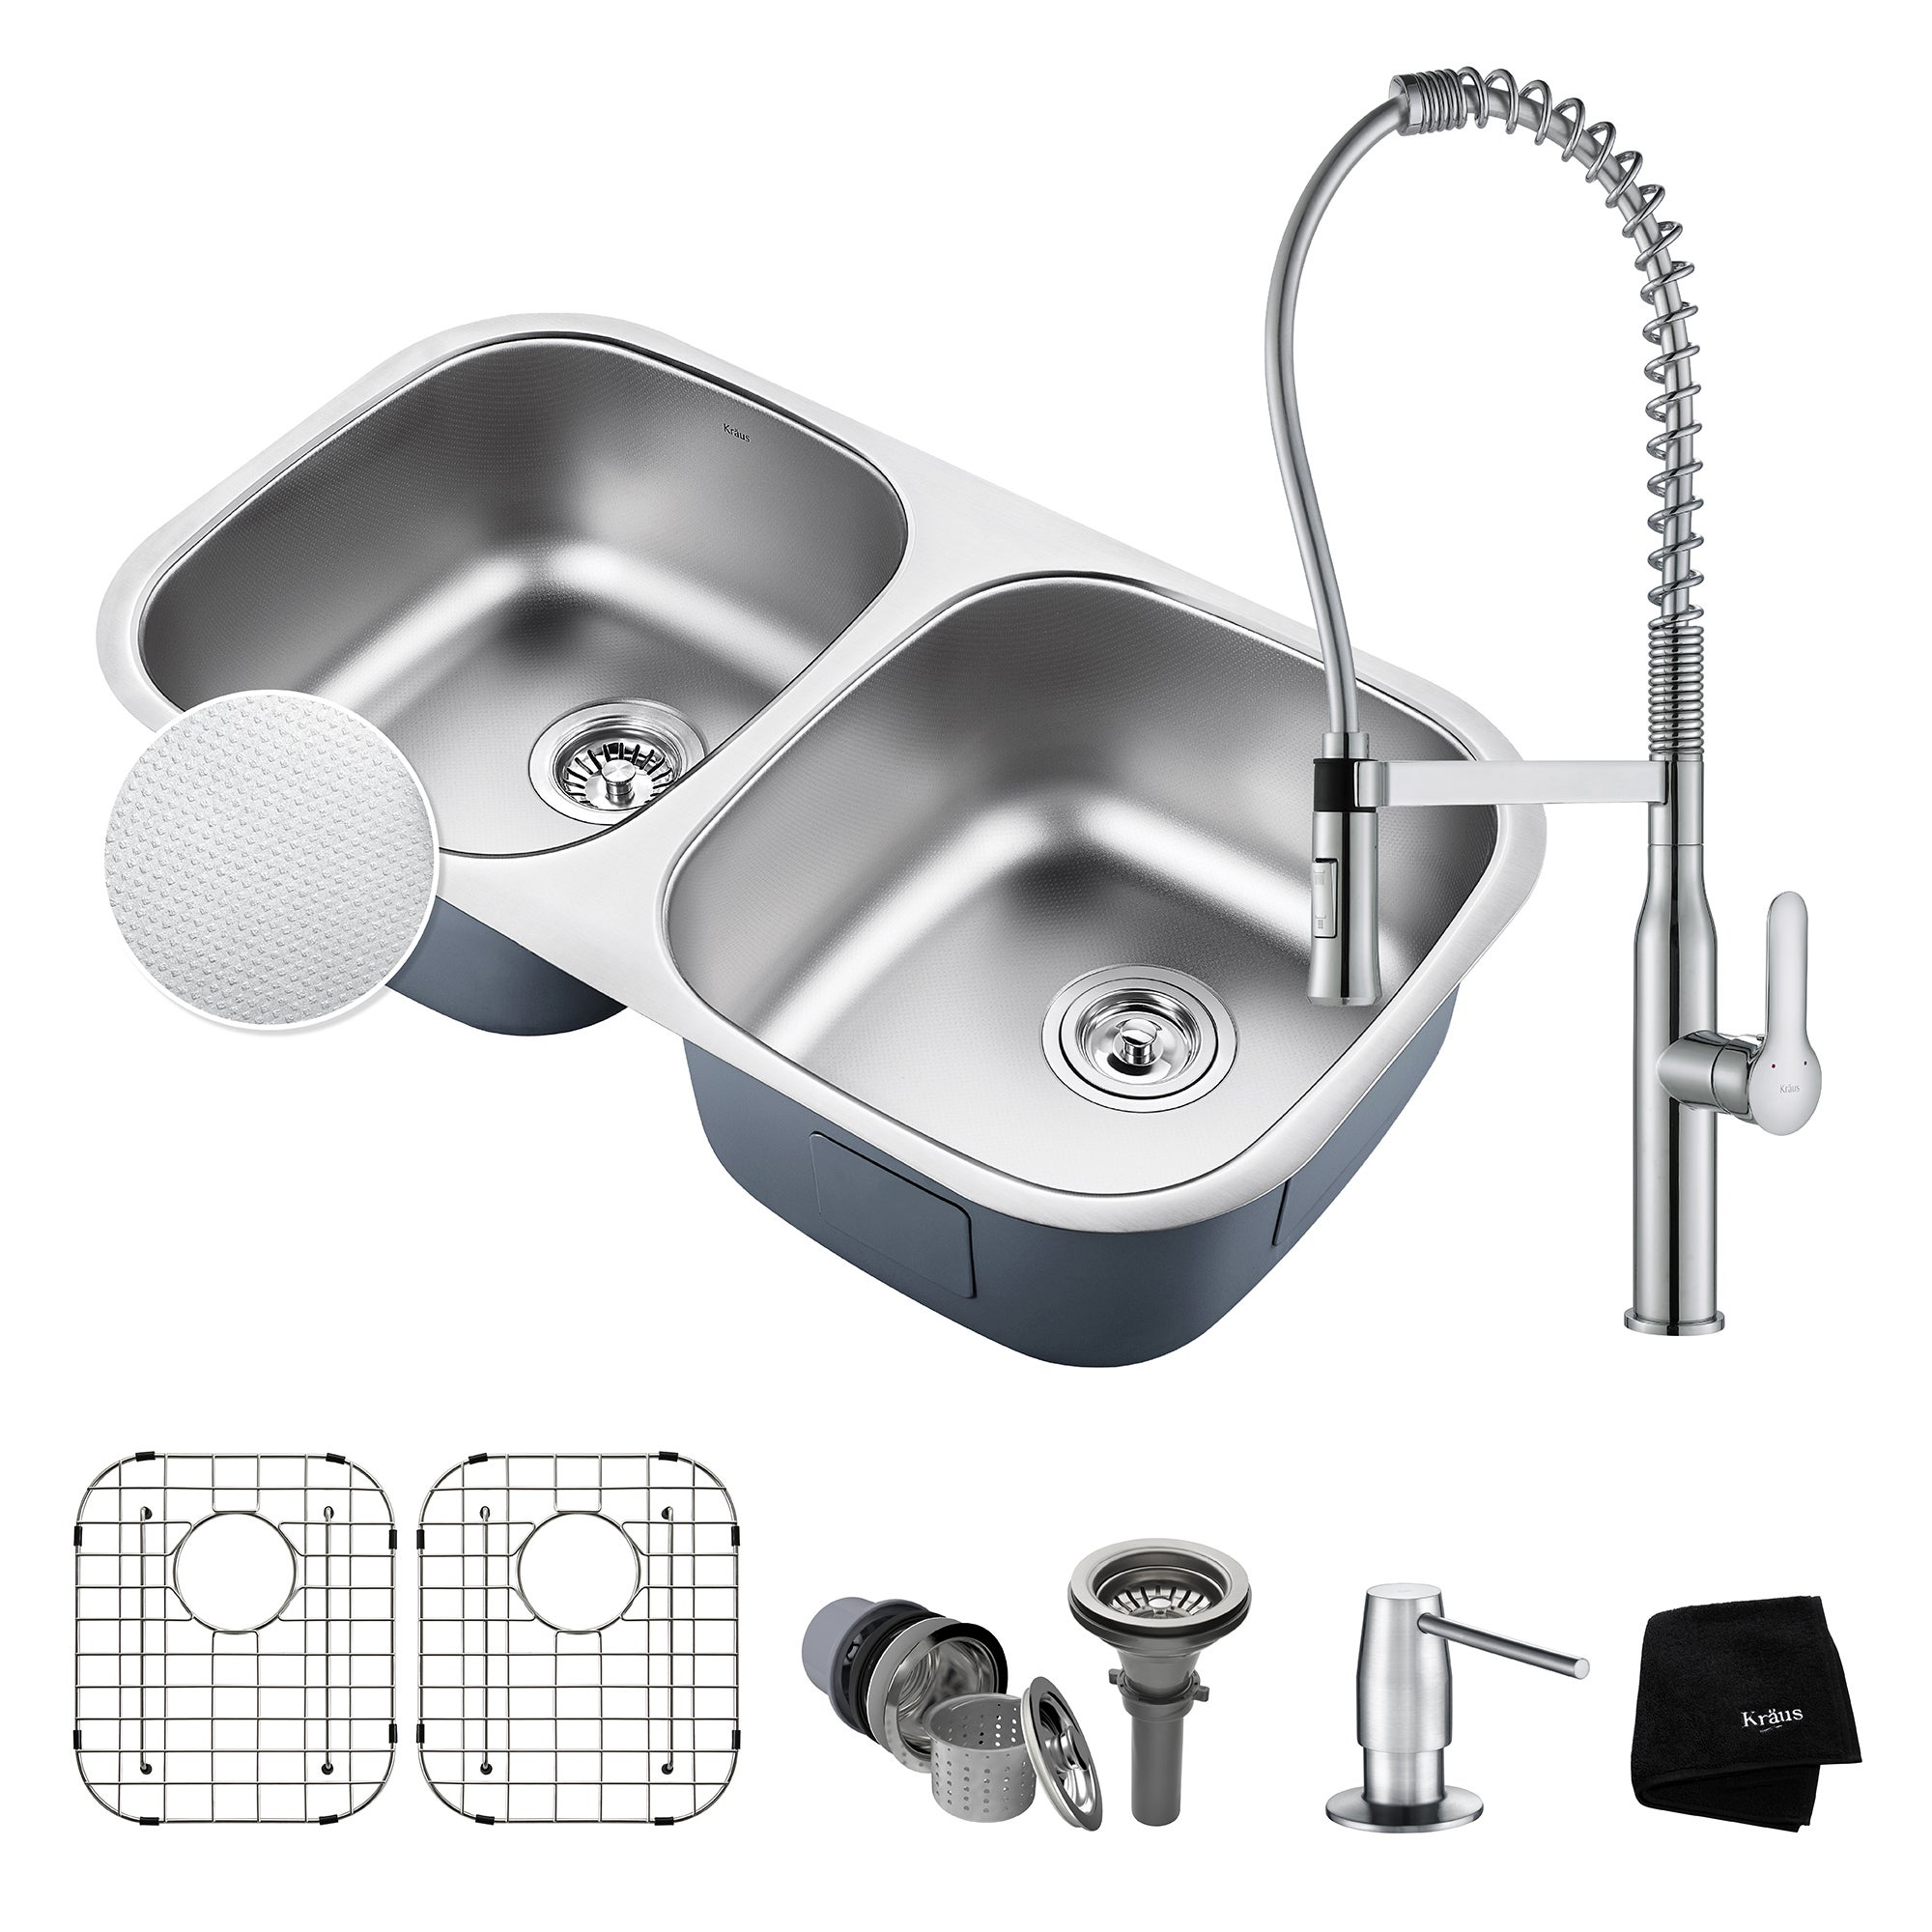 Charmant Shop KRAUS 32 Inch Undermount Double Bowl Stainless Steel Kitchen Sink,  KPF 1640 Nola Commercial Pull Down Faucet, Dispenser   Free Shipping Today  ...